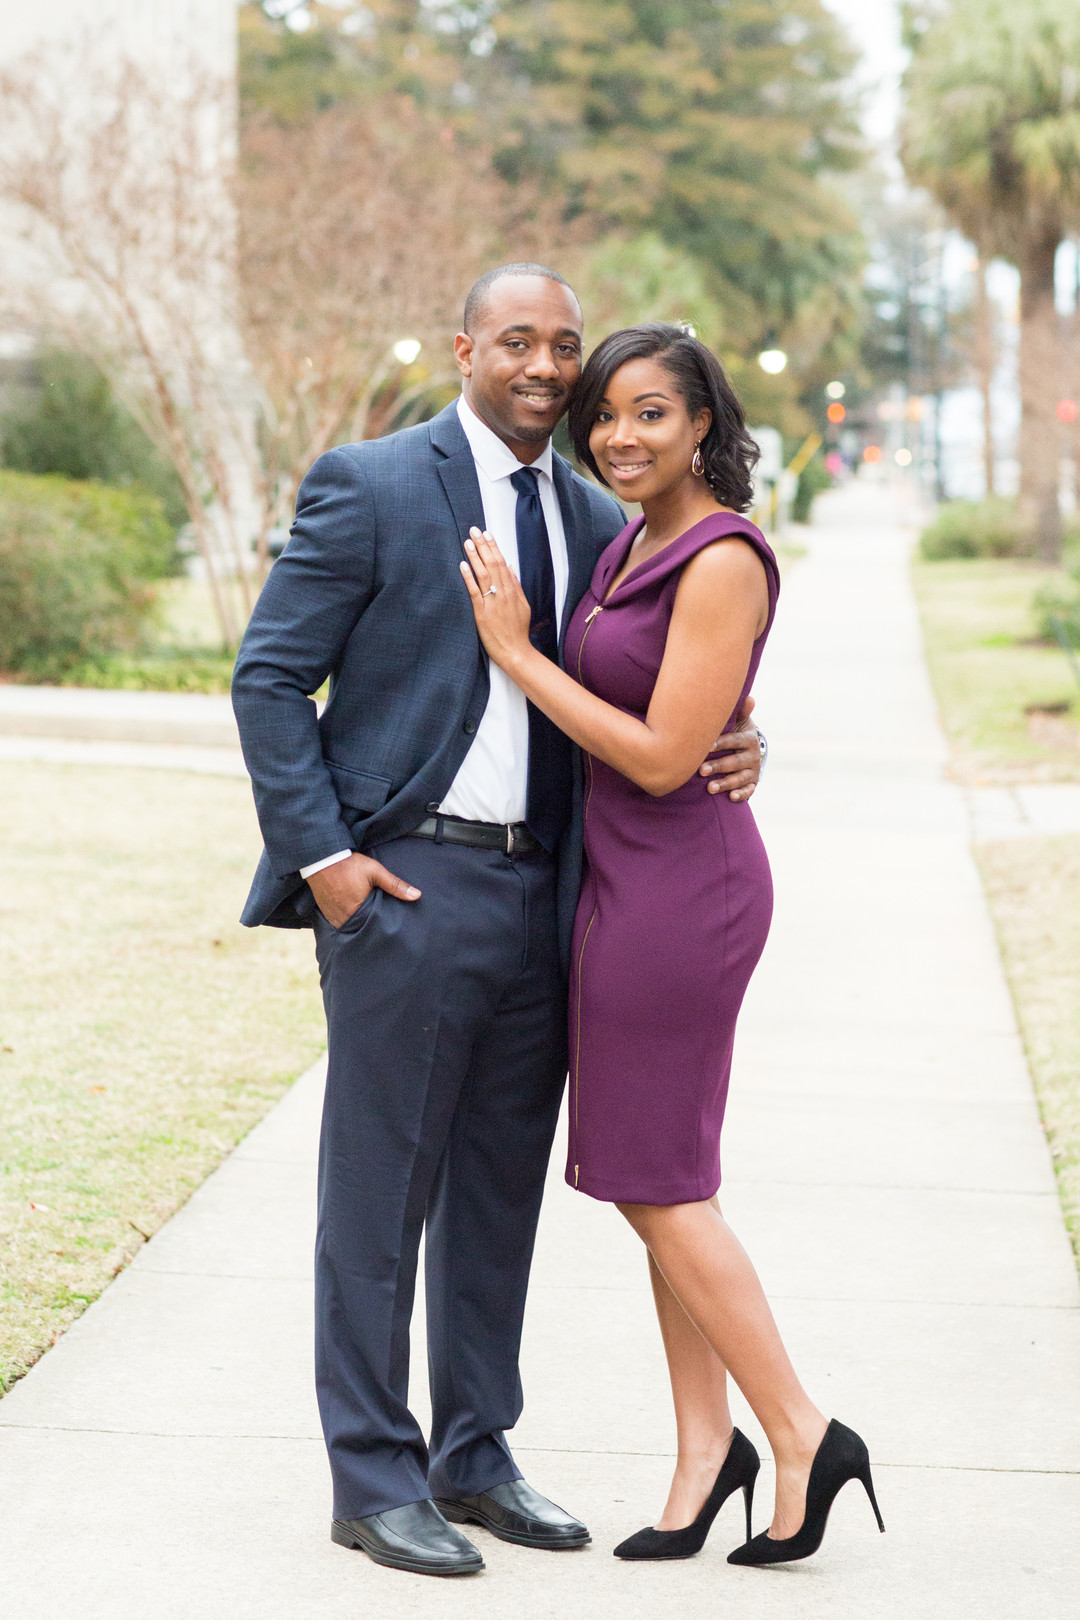 Jessica Hunt Photography Fall Autumn Engagement Session in Columbia South Carolina Clemson Alums Brent +Cass